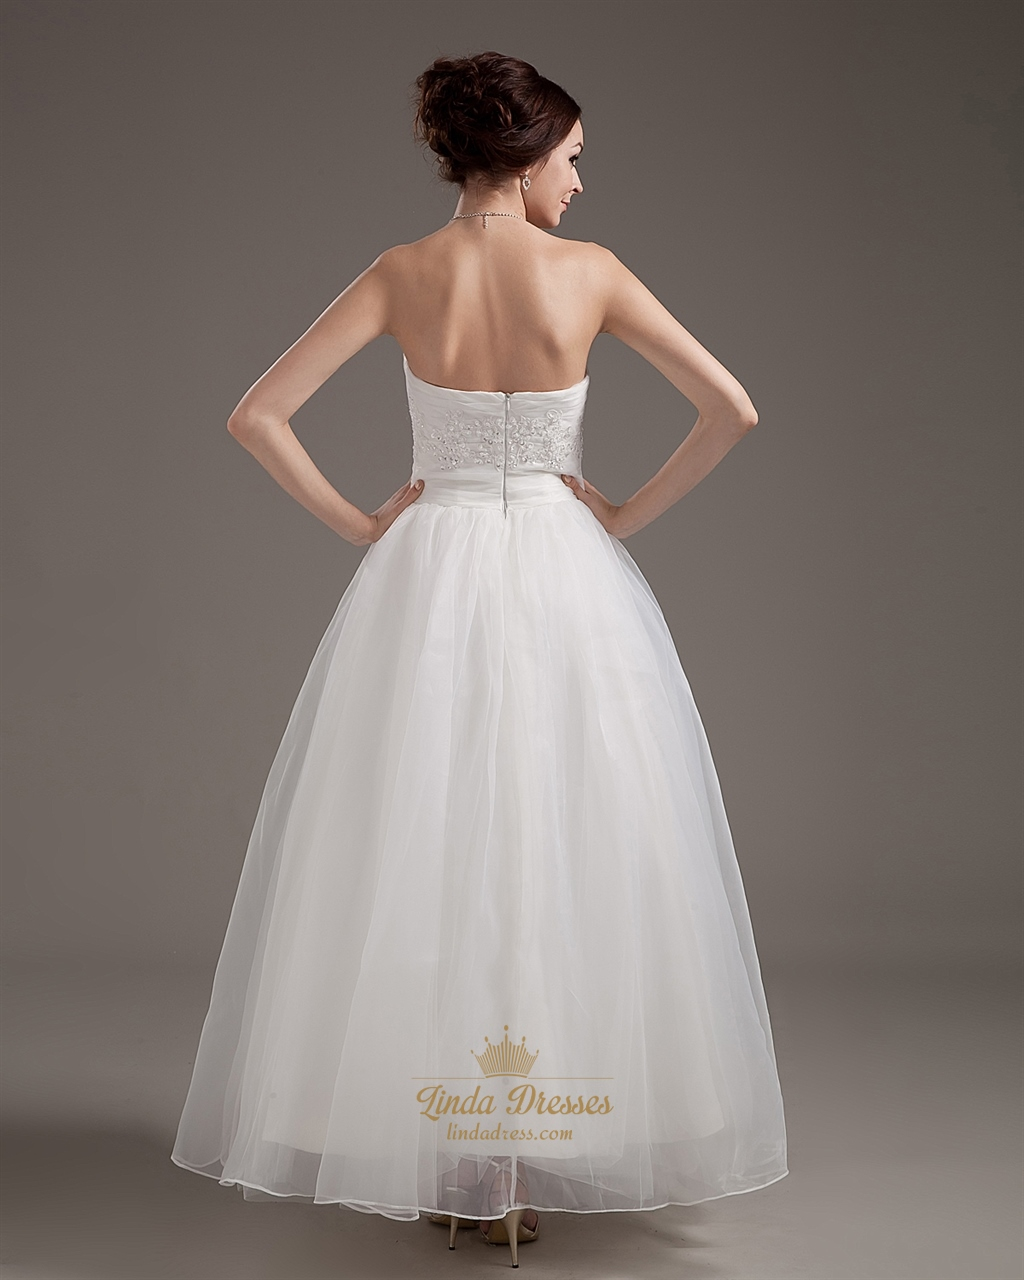 Ivory strapless ankle length wedding dresses with lace for Lace ankle length wedding dress